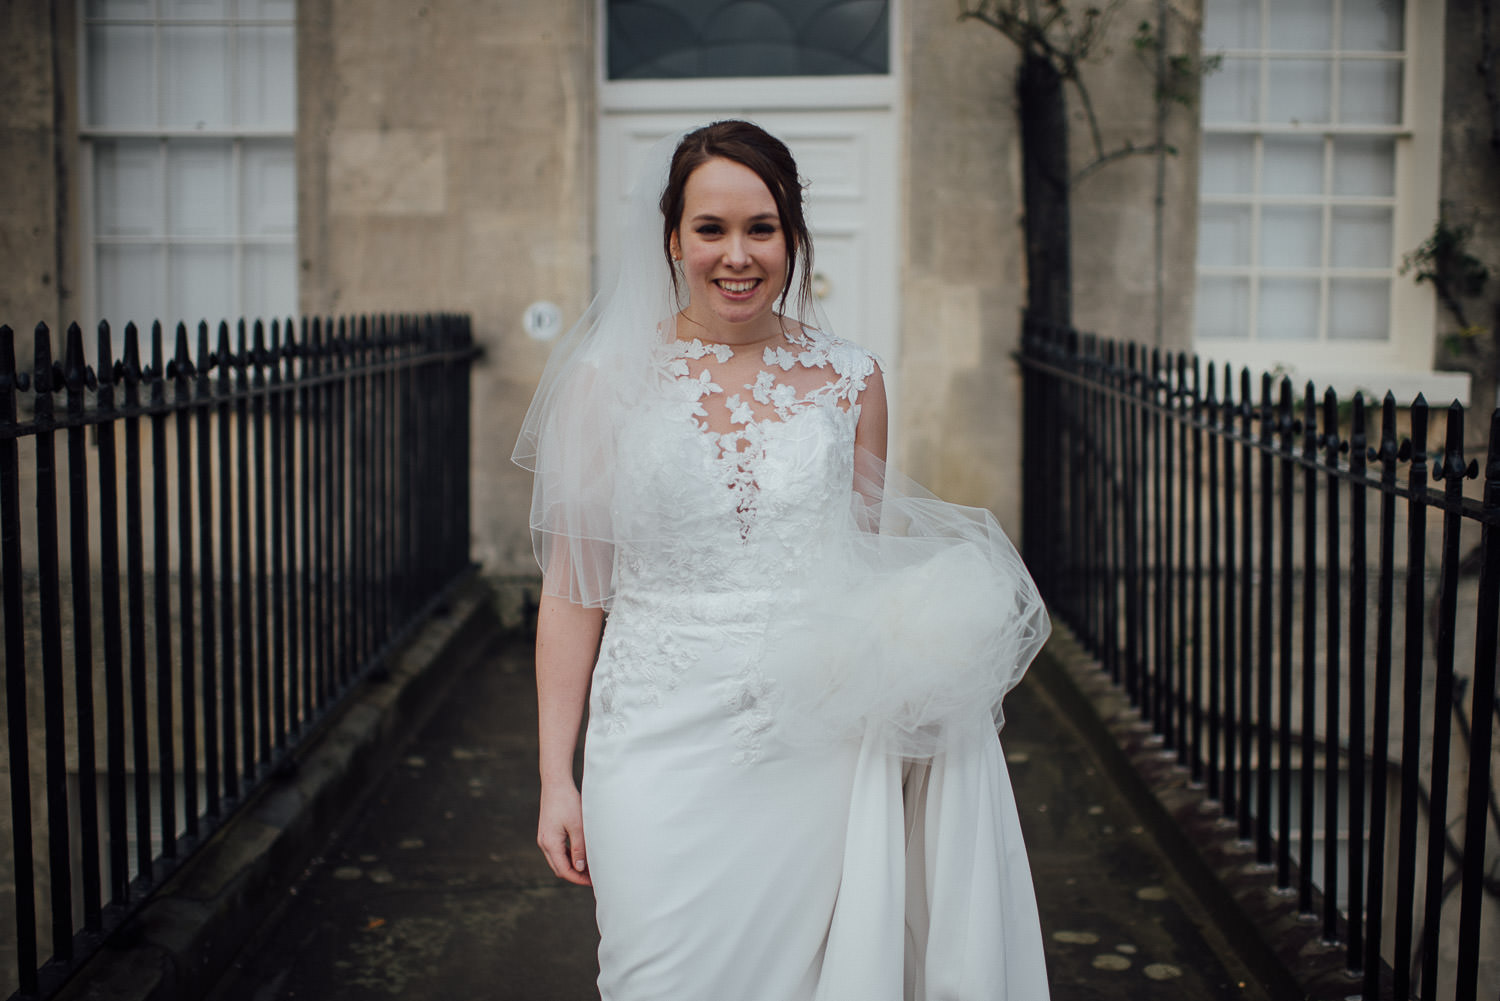 bath bride in pronovias dress bath wedding photographer the shannons photography